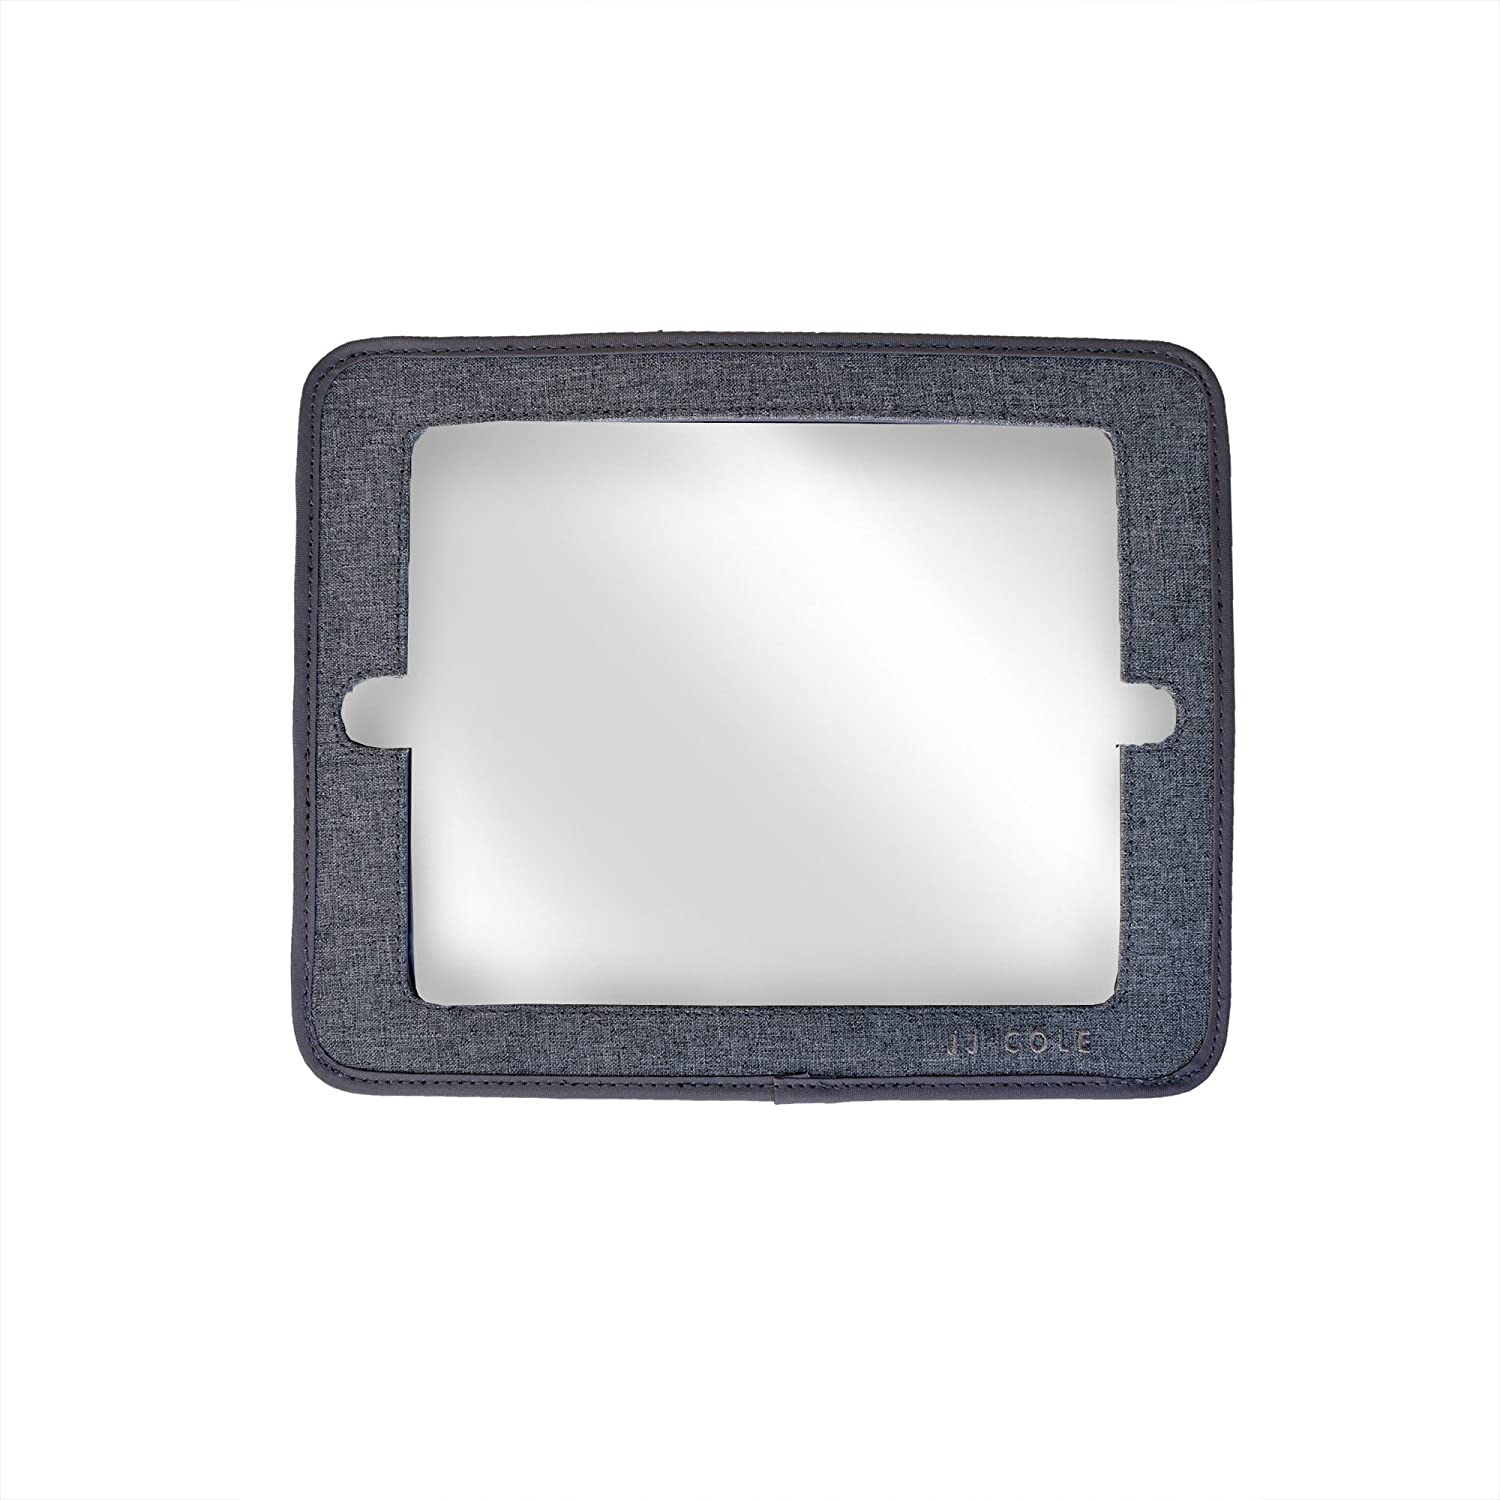 JJ Cole 2-in-1 Mirror and Tablet Holder